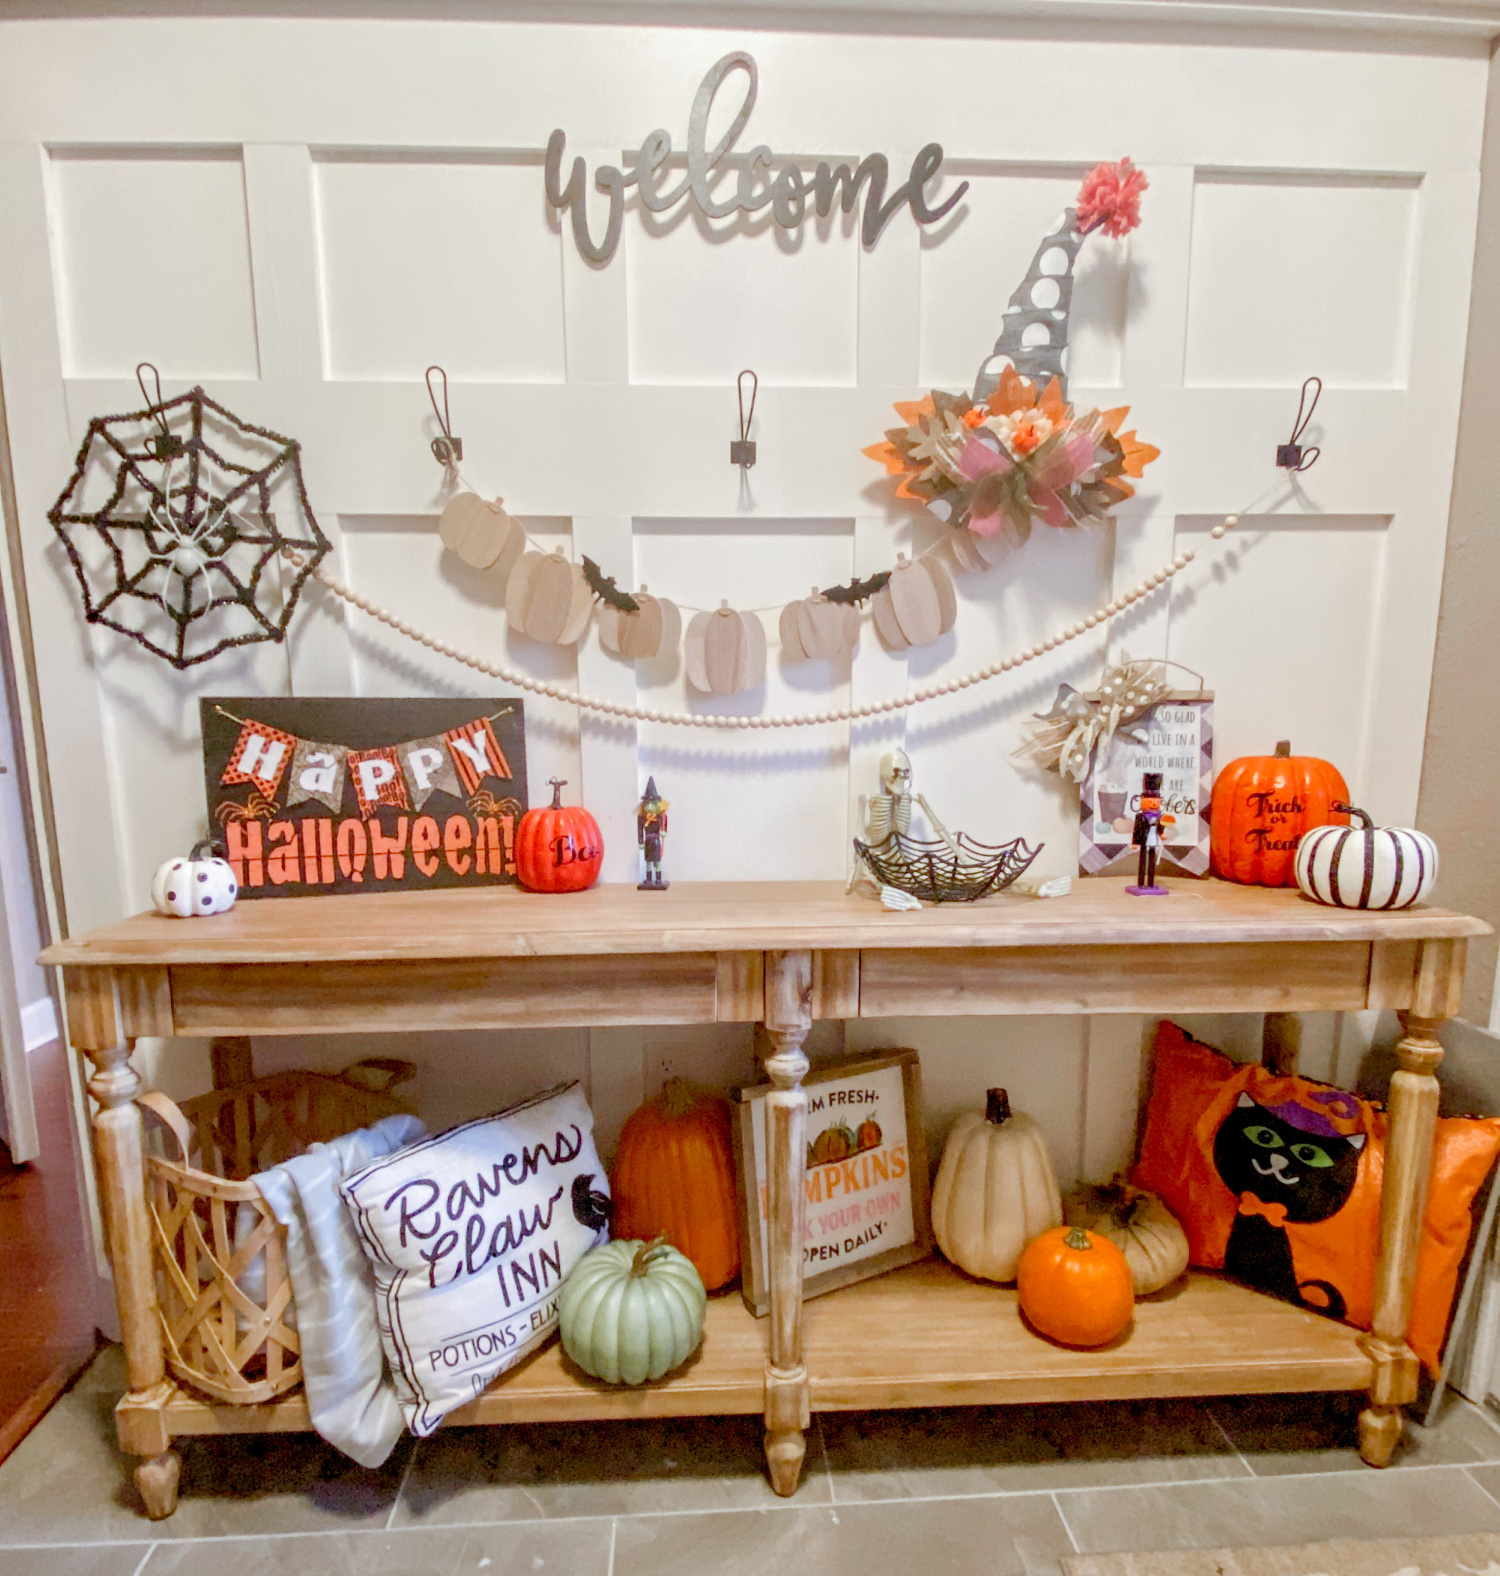 Mix Halloween and Fall decor together. This tutorial shows you how to take dollar store items and transform them into fall and halloween decor together. #fall #halloween #homedecor #dollartree